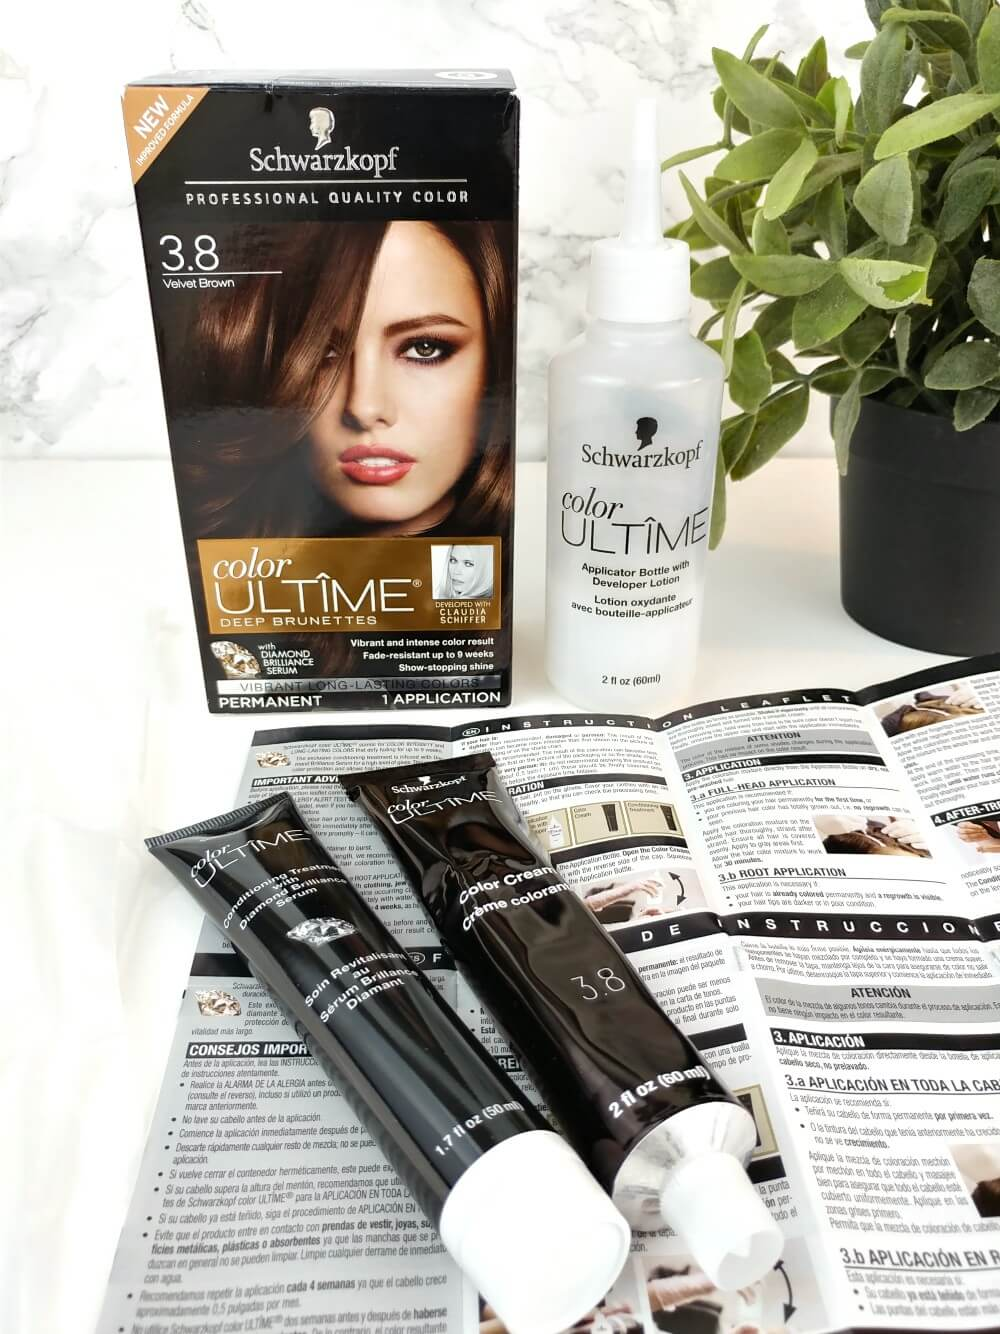 schawarzkopf-color-ultime-deep-brunettes-instructions